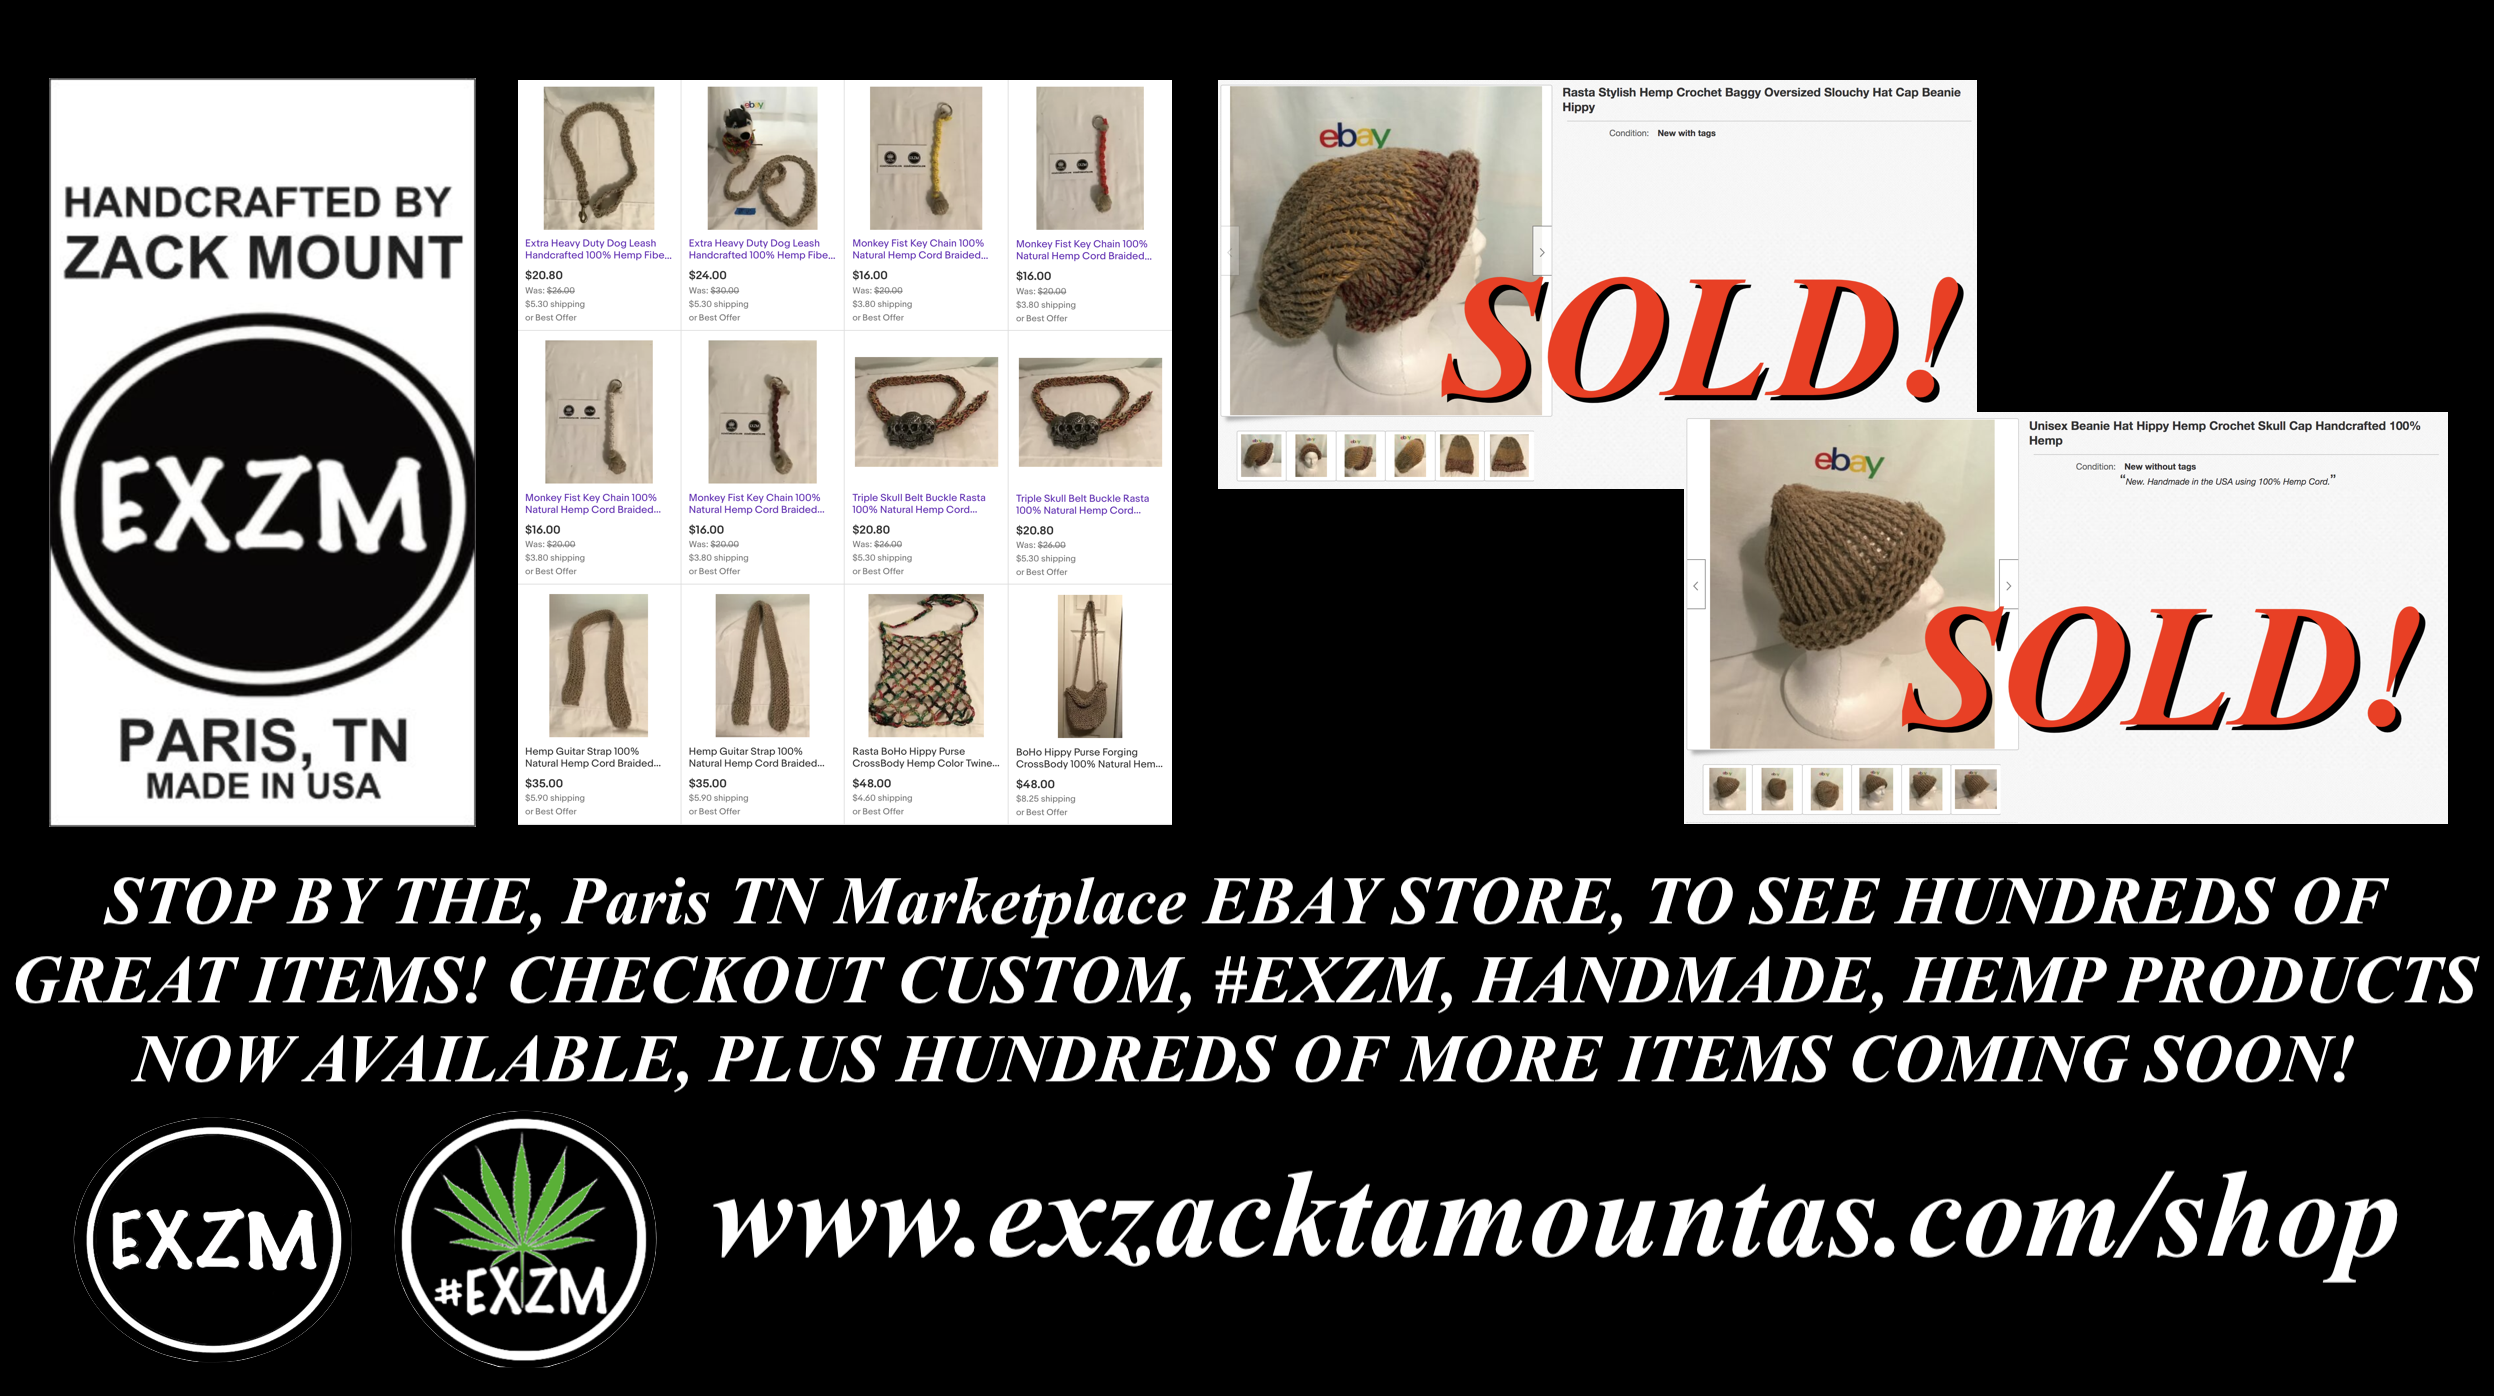 Stop By The Paris Tn Marketplace Ebay Store To See Hundreds Of Great Items Checkout Custom Exzm Handmade Hemp Products Now Available Plus Hundreds Of More Items Coming Soon Exzackta Mountas